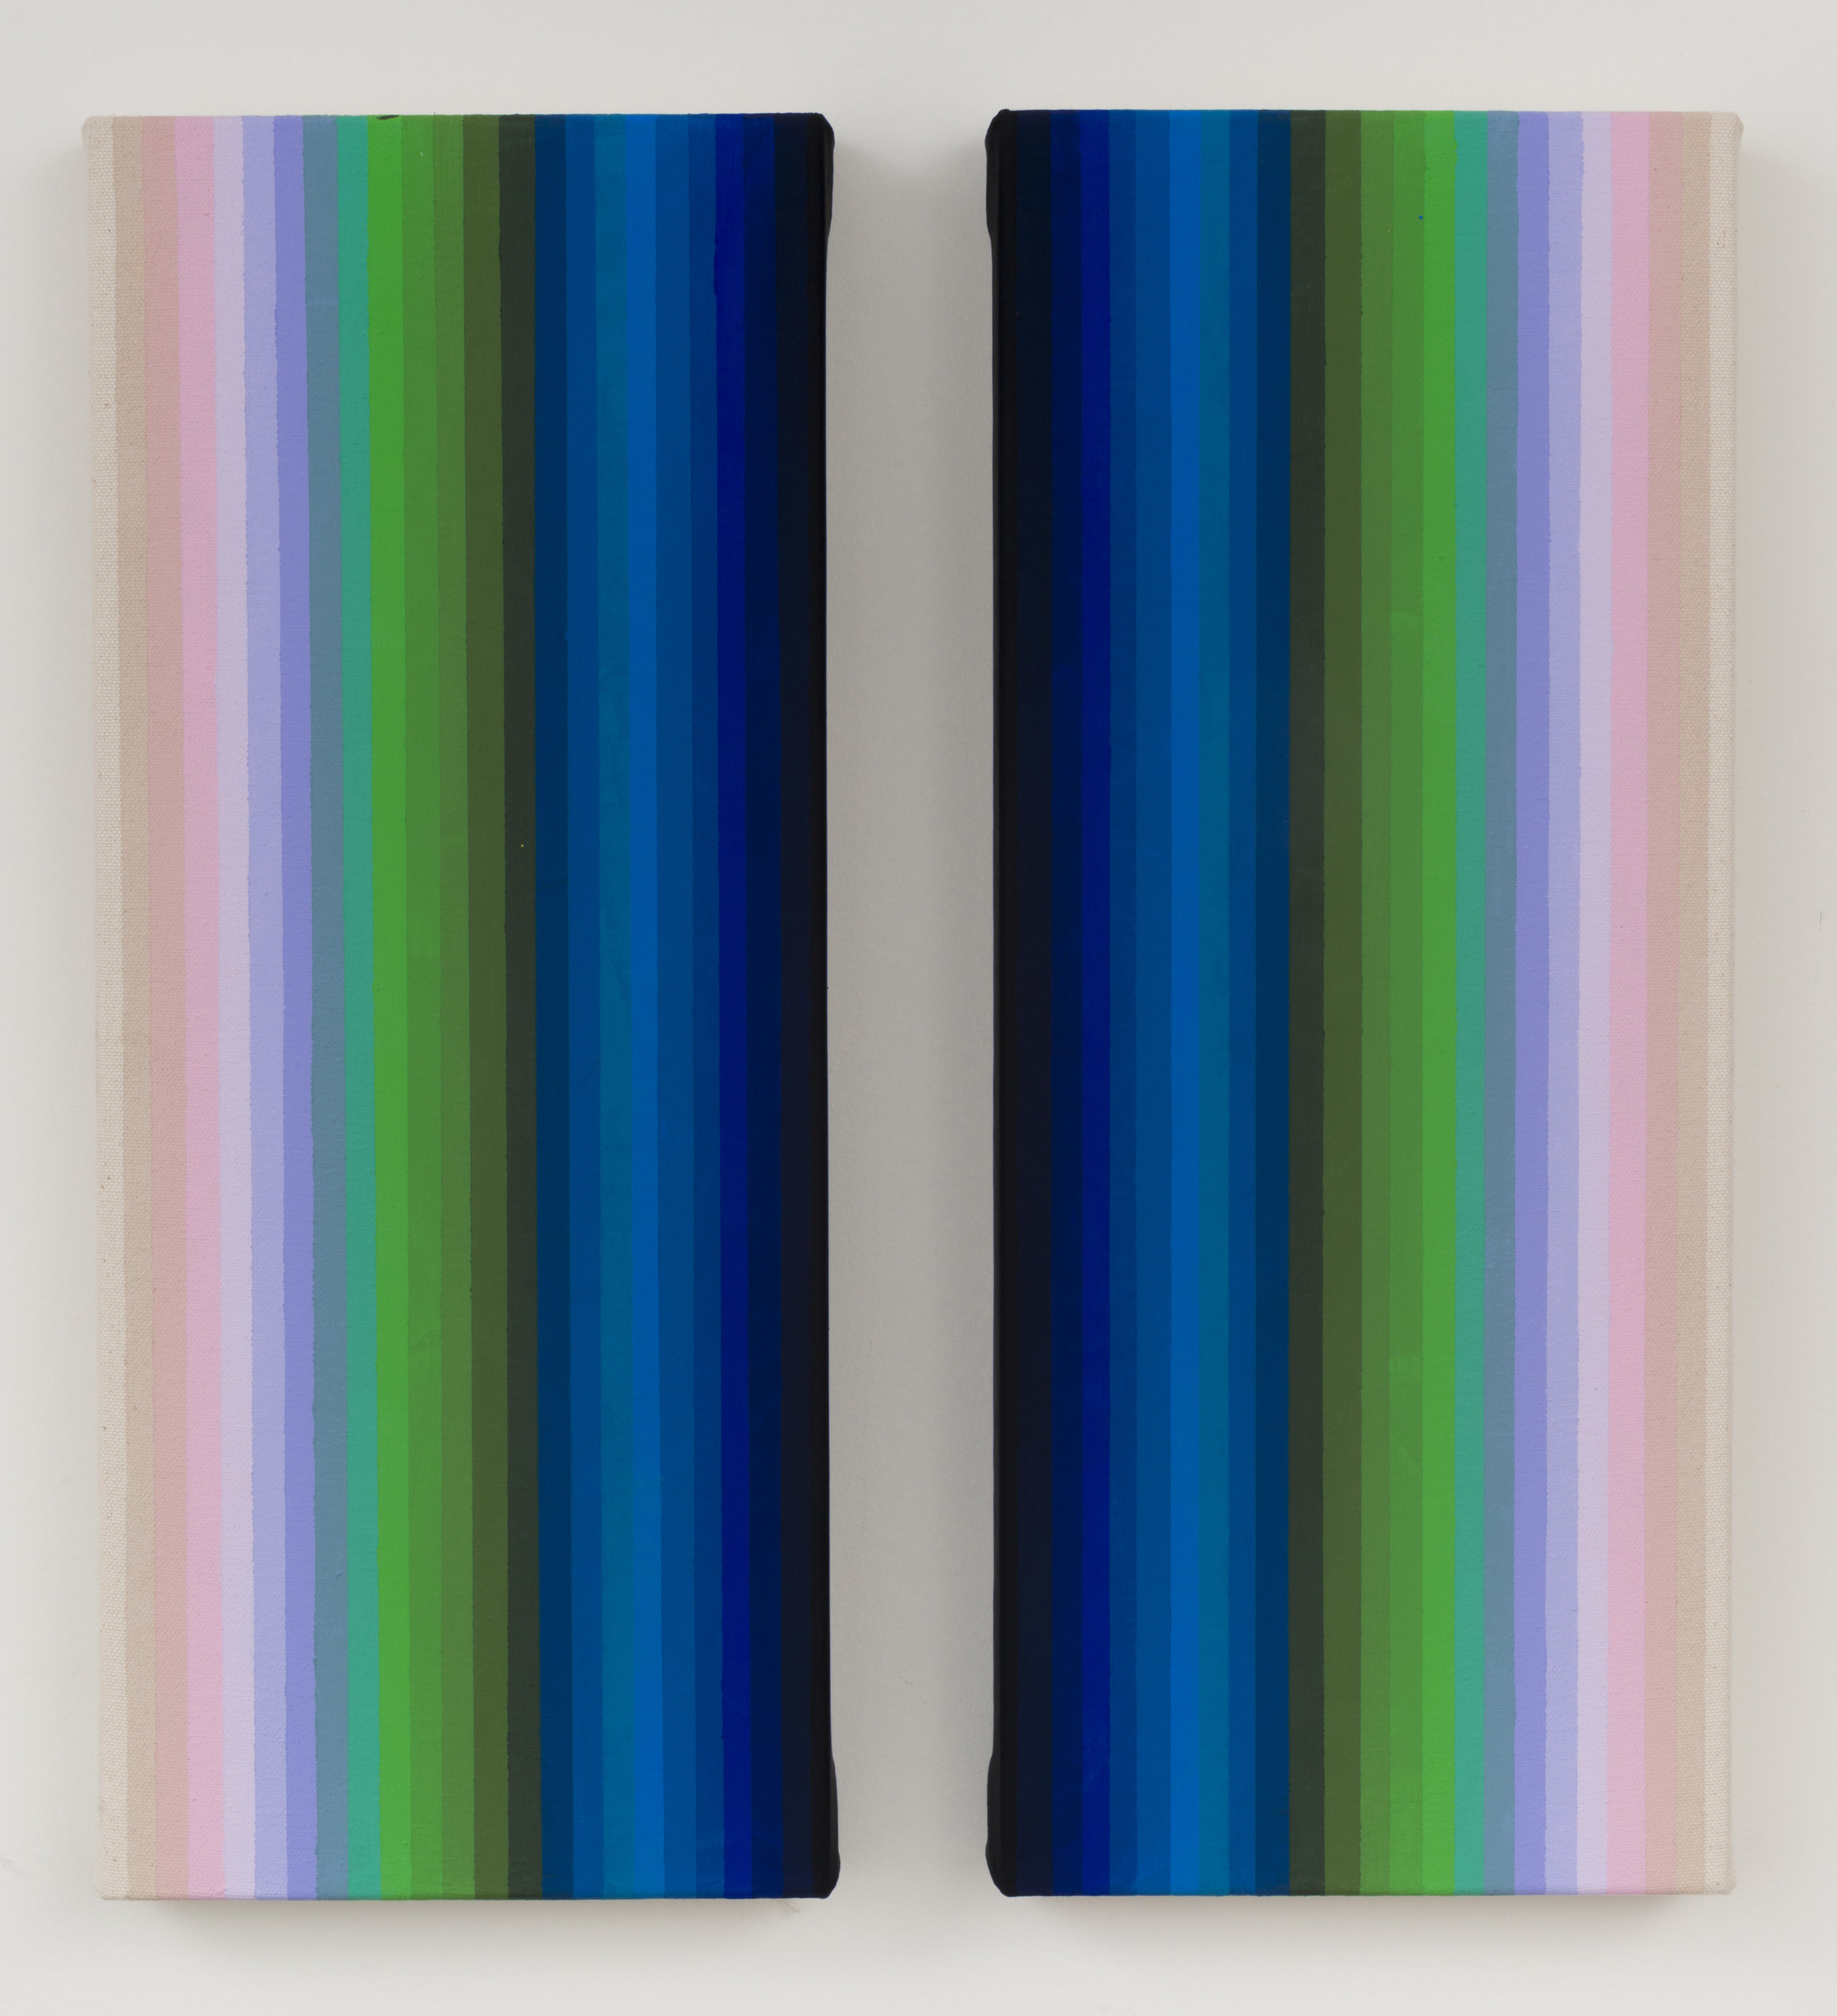 13 - Together And Apart, 2016, Diptych 17x7  each  Flashe on canvas.jpg